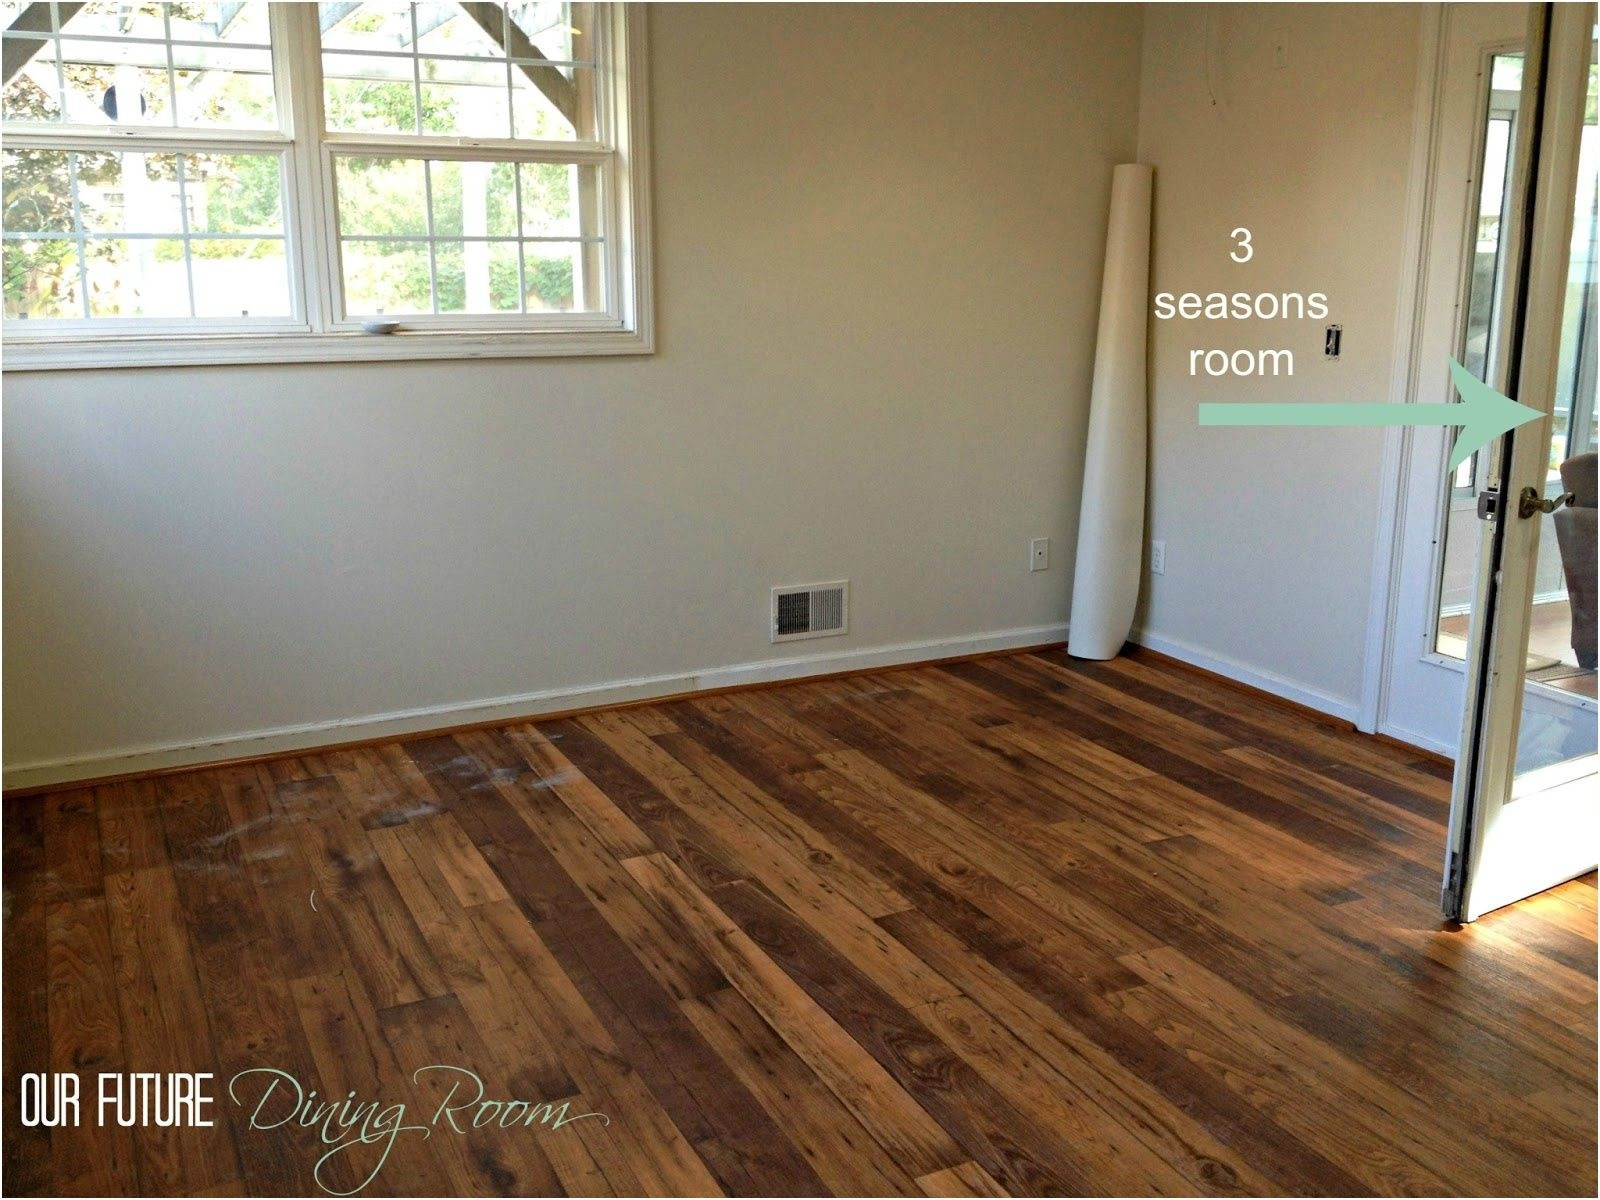 hardwood flooring costs 2018 of linoleum flooring rolls home depot awesome linoleum flooring rolls with regard to linoleum flooring rolls home depot awesome linoleum flooring rolls home depot floor vinylod plank flooring cost